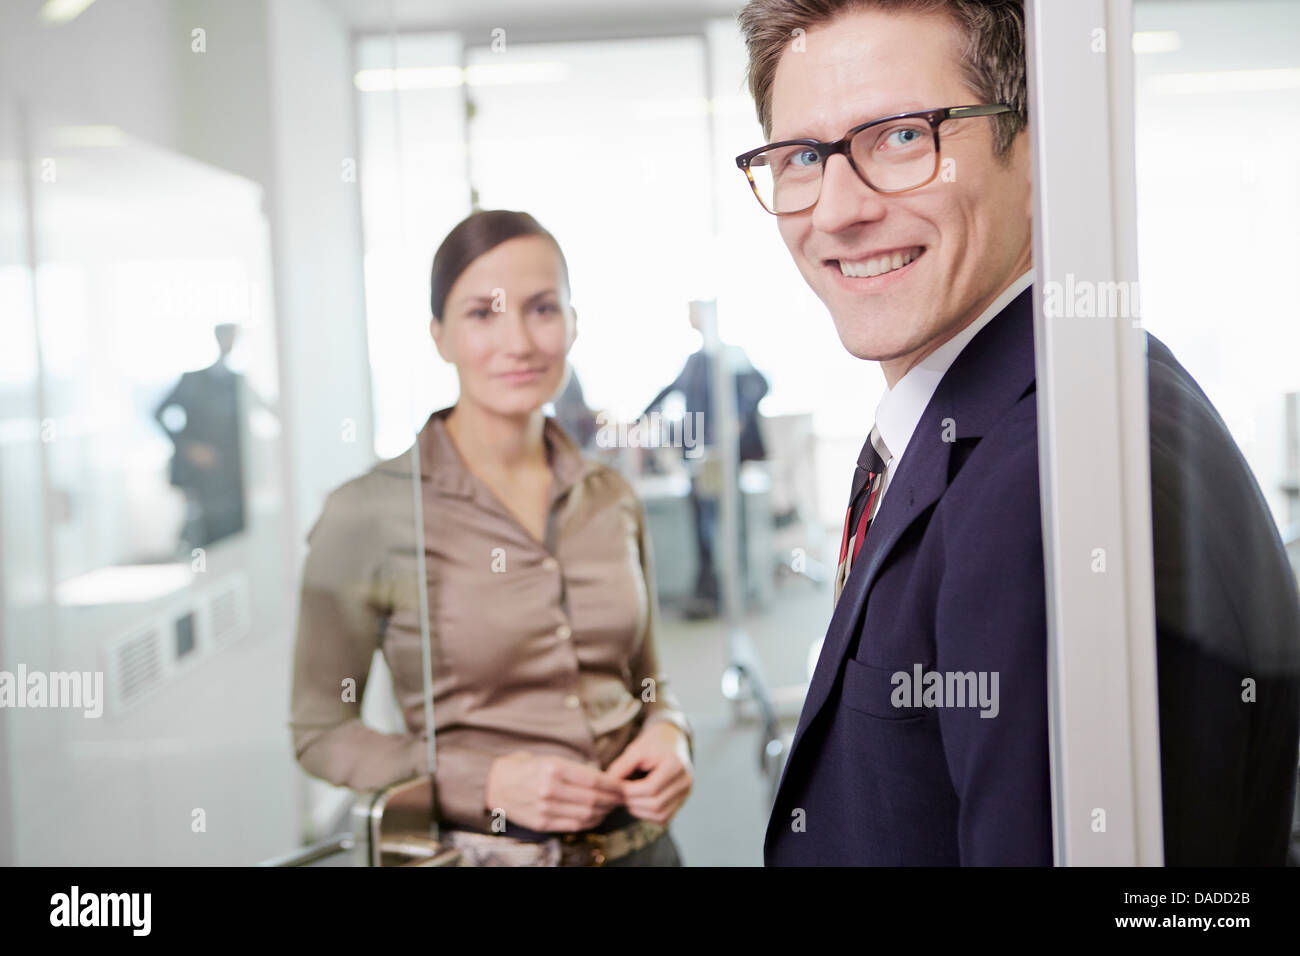 Man and woman wearing business attire standing in door frame of office - Stock Image